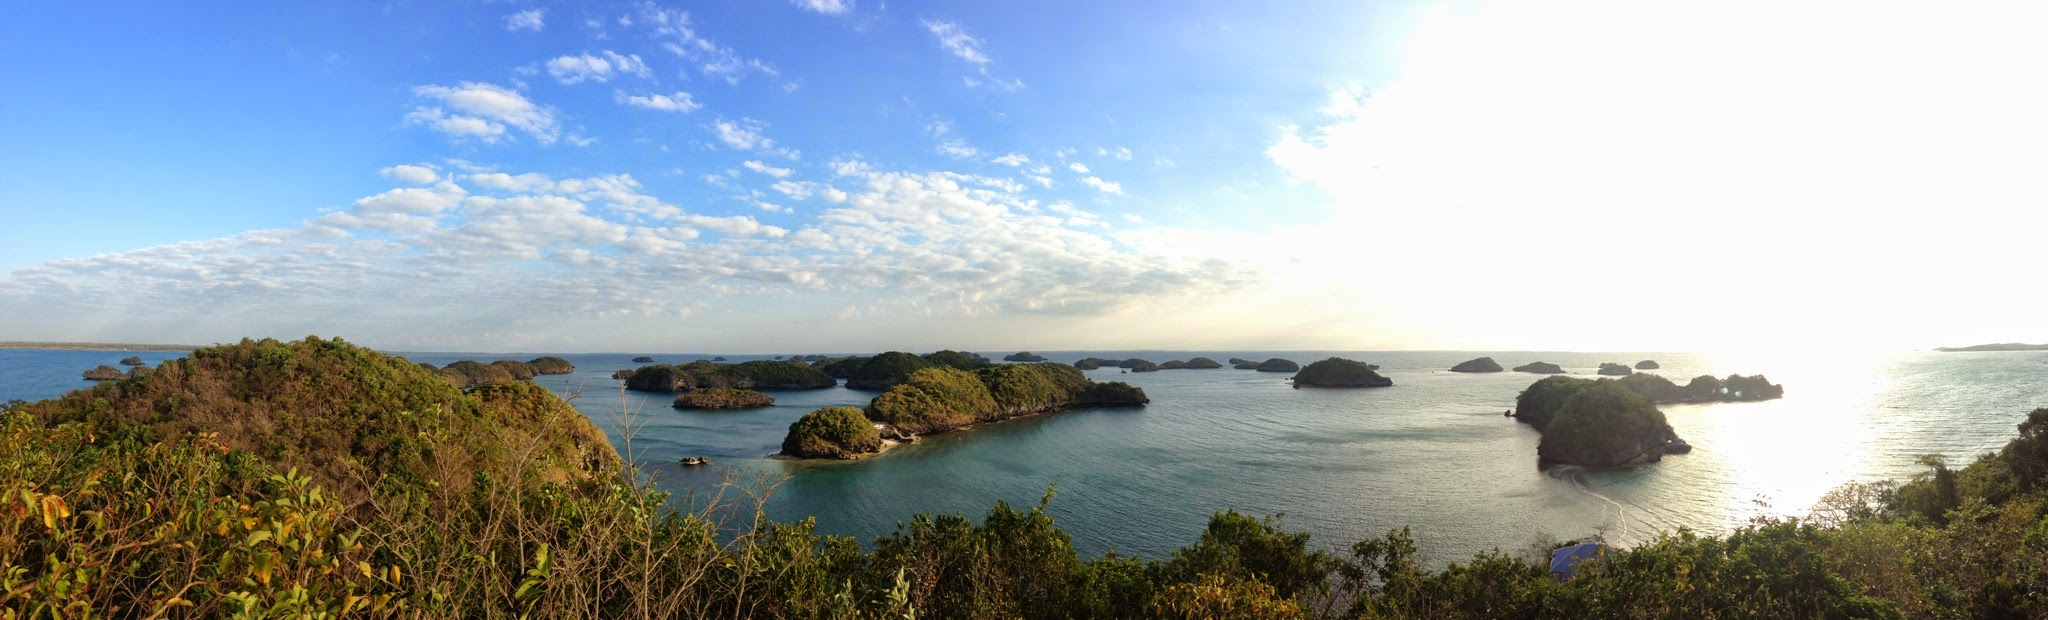 A panoramic view of the Hundred Islands National Park in Alaminos, Pangasinan